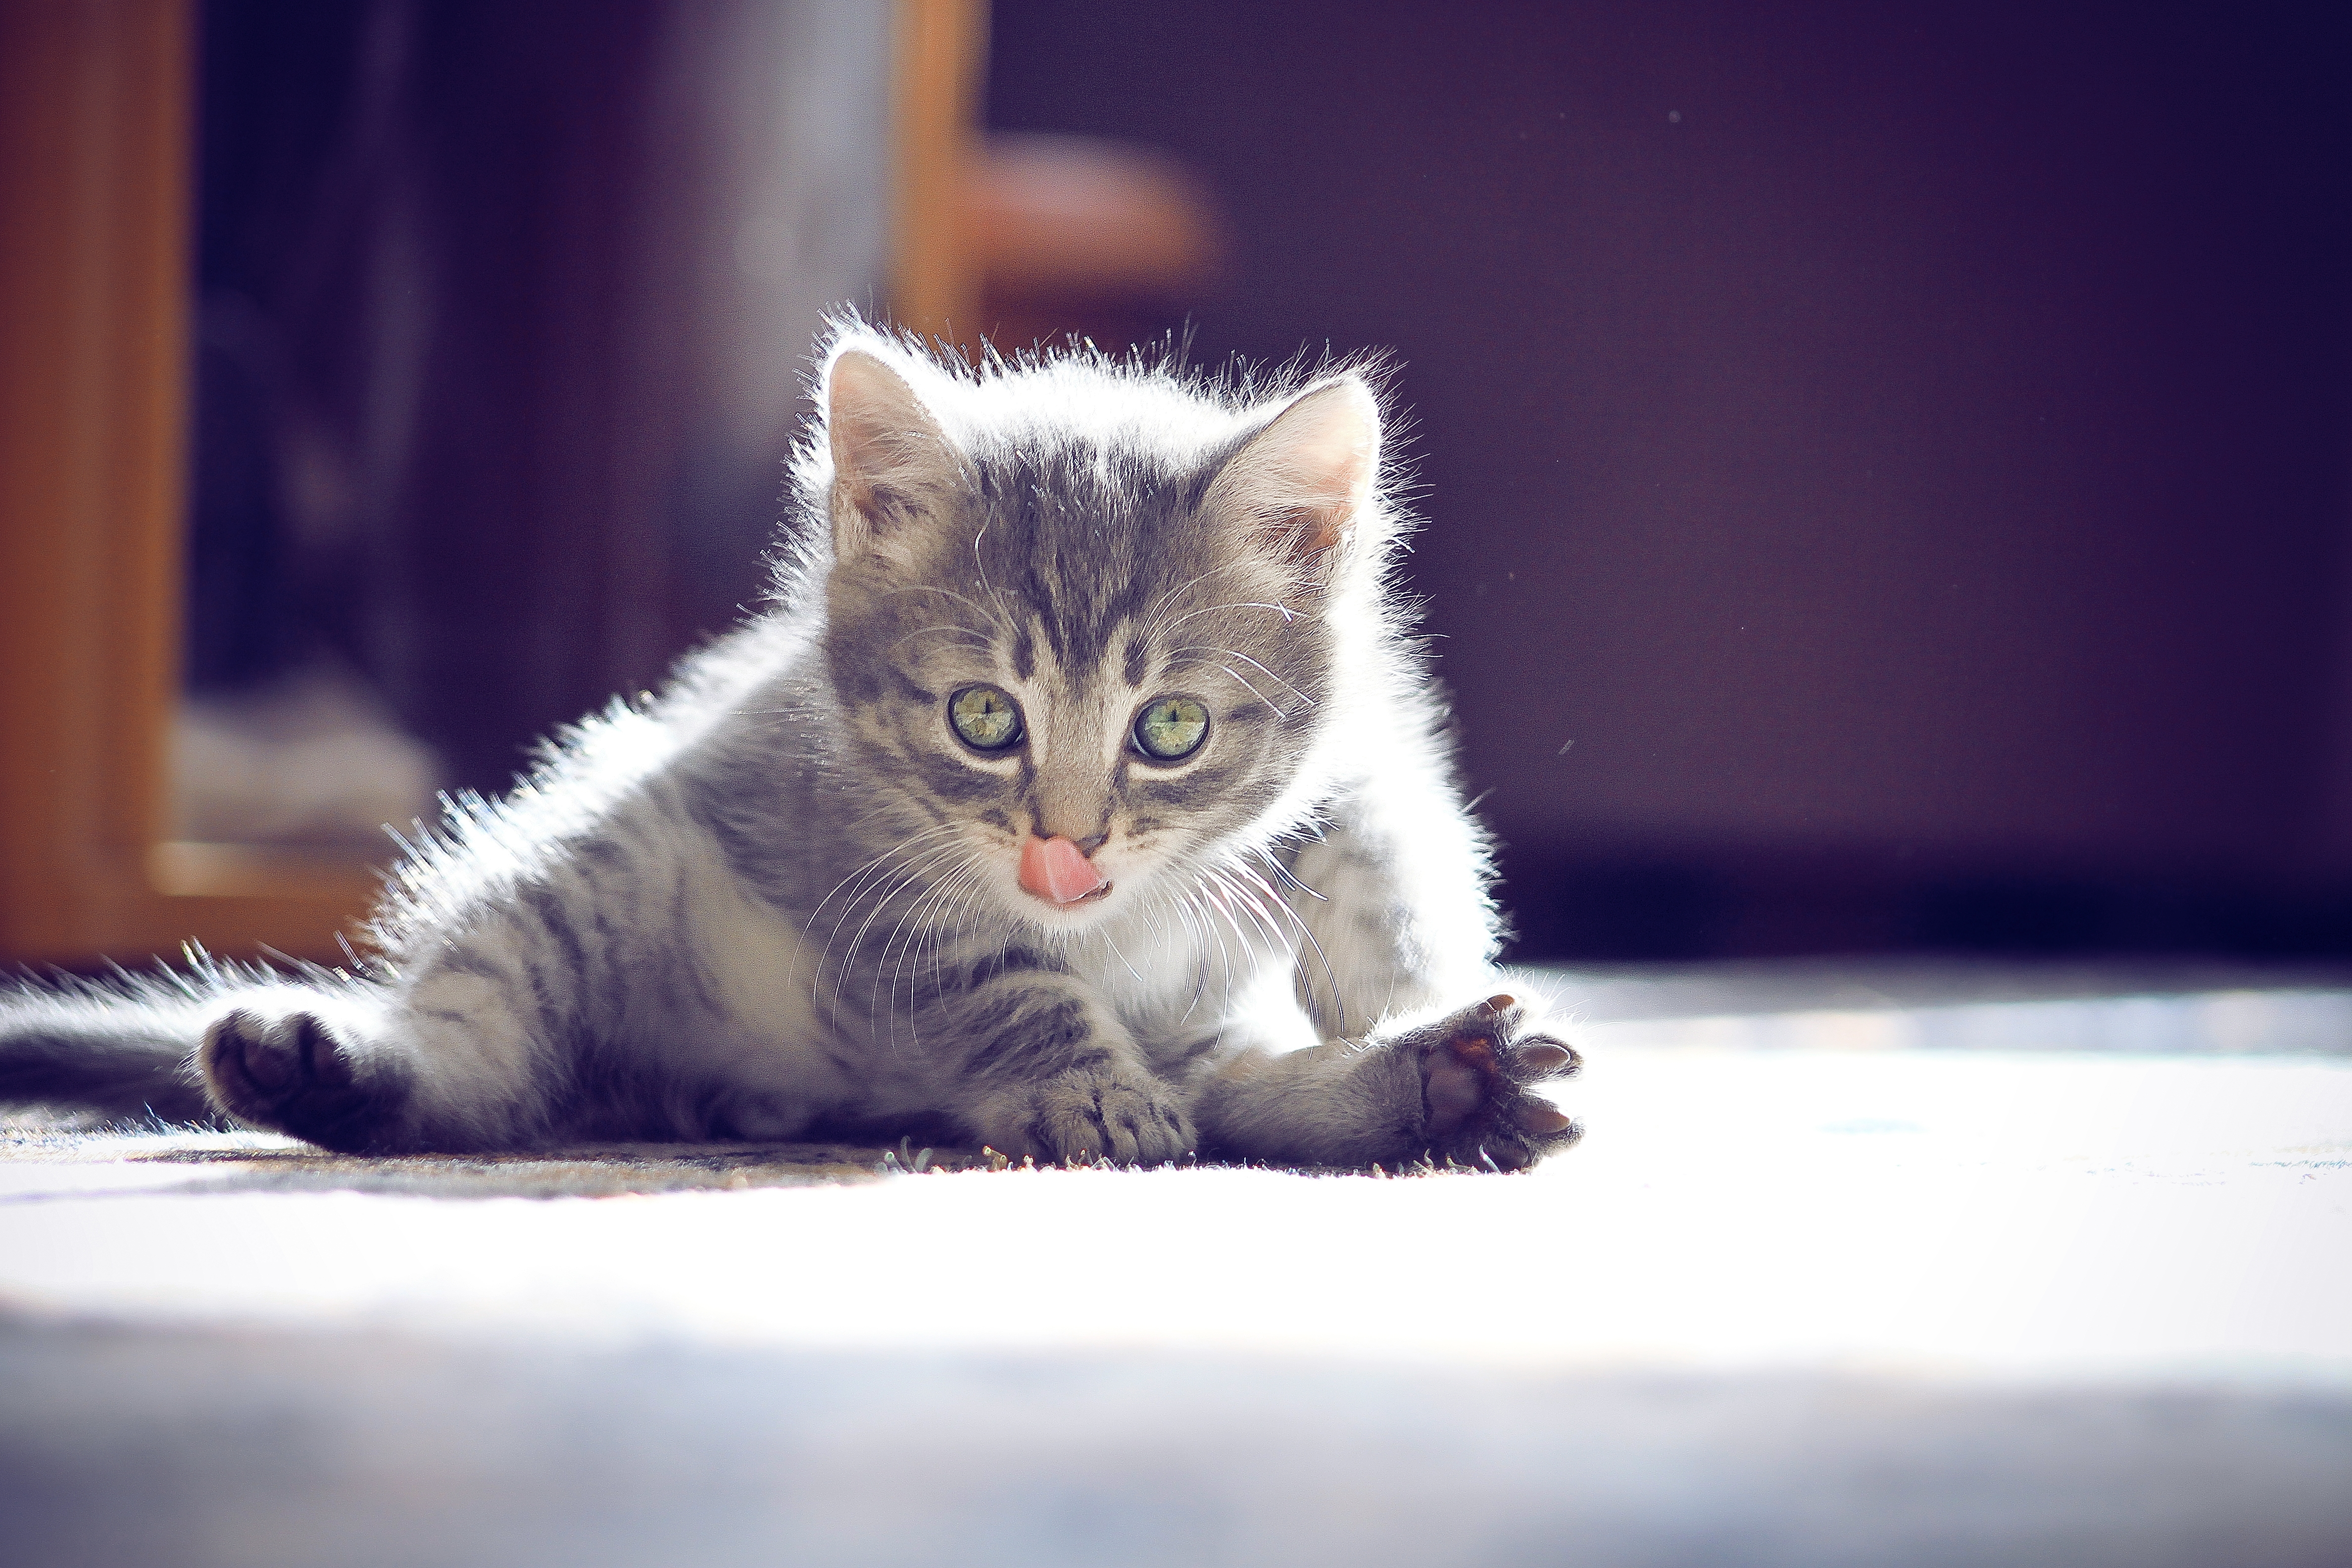 66755 download wallpaper Animals, Kitty, Kitten, Muzzle, Language, Tongue, Sit, Nice, Sweetheart screensavers and pictures for free